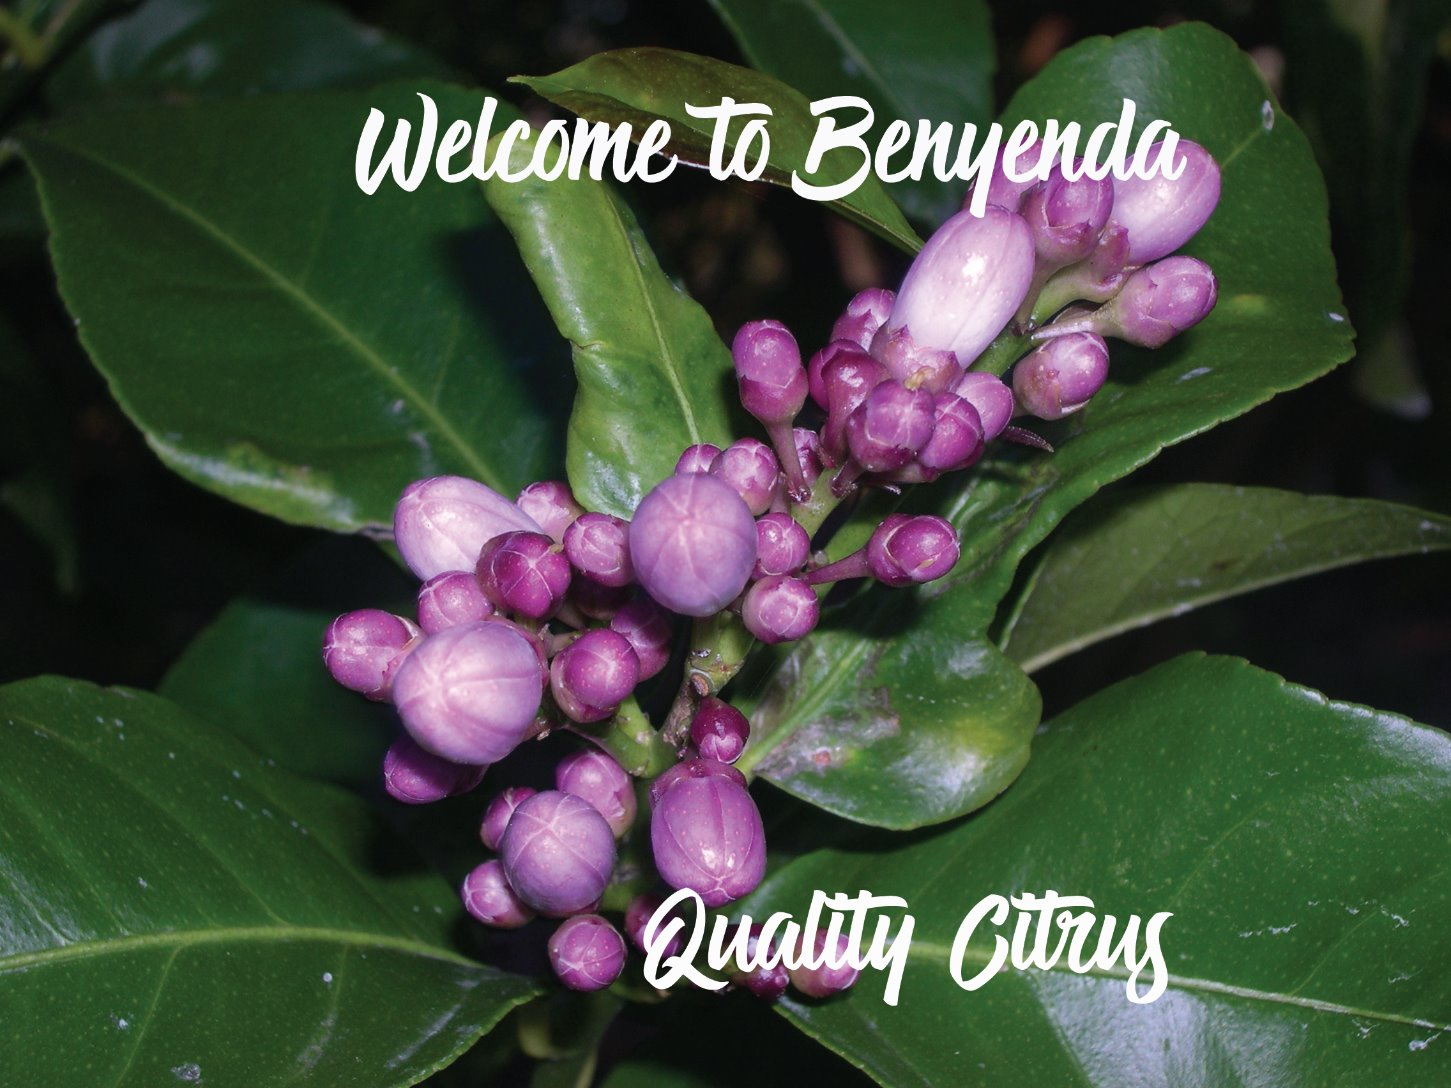 Welcome to Benyenda